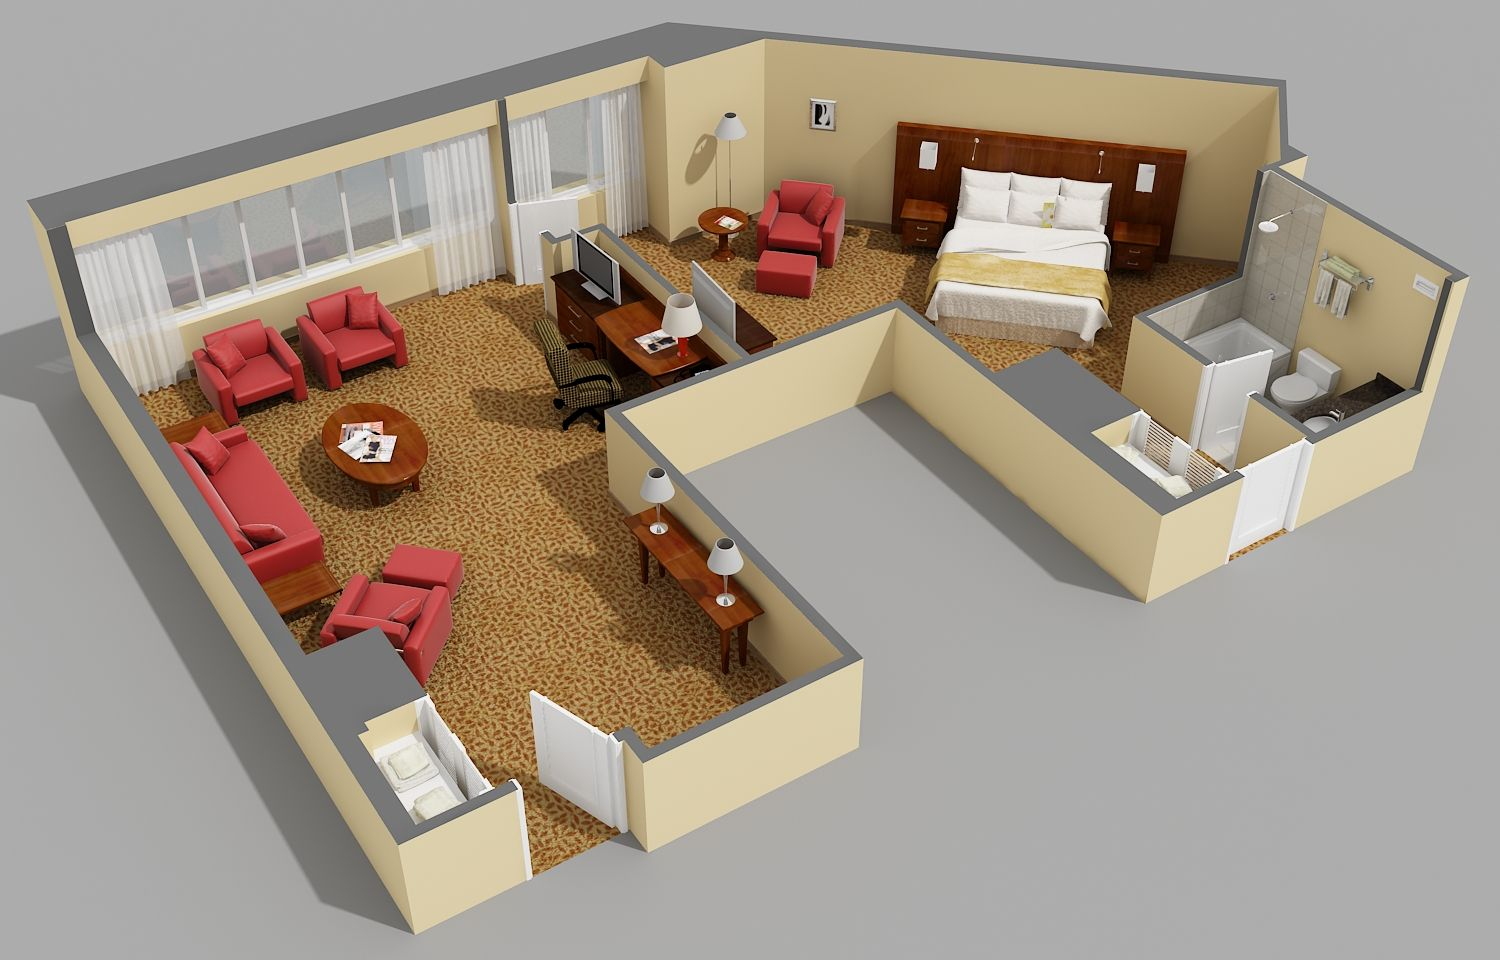 3d floor plans used for hotel marketing room hotel for 3d apartment floor plans